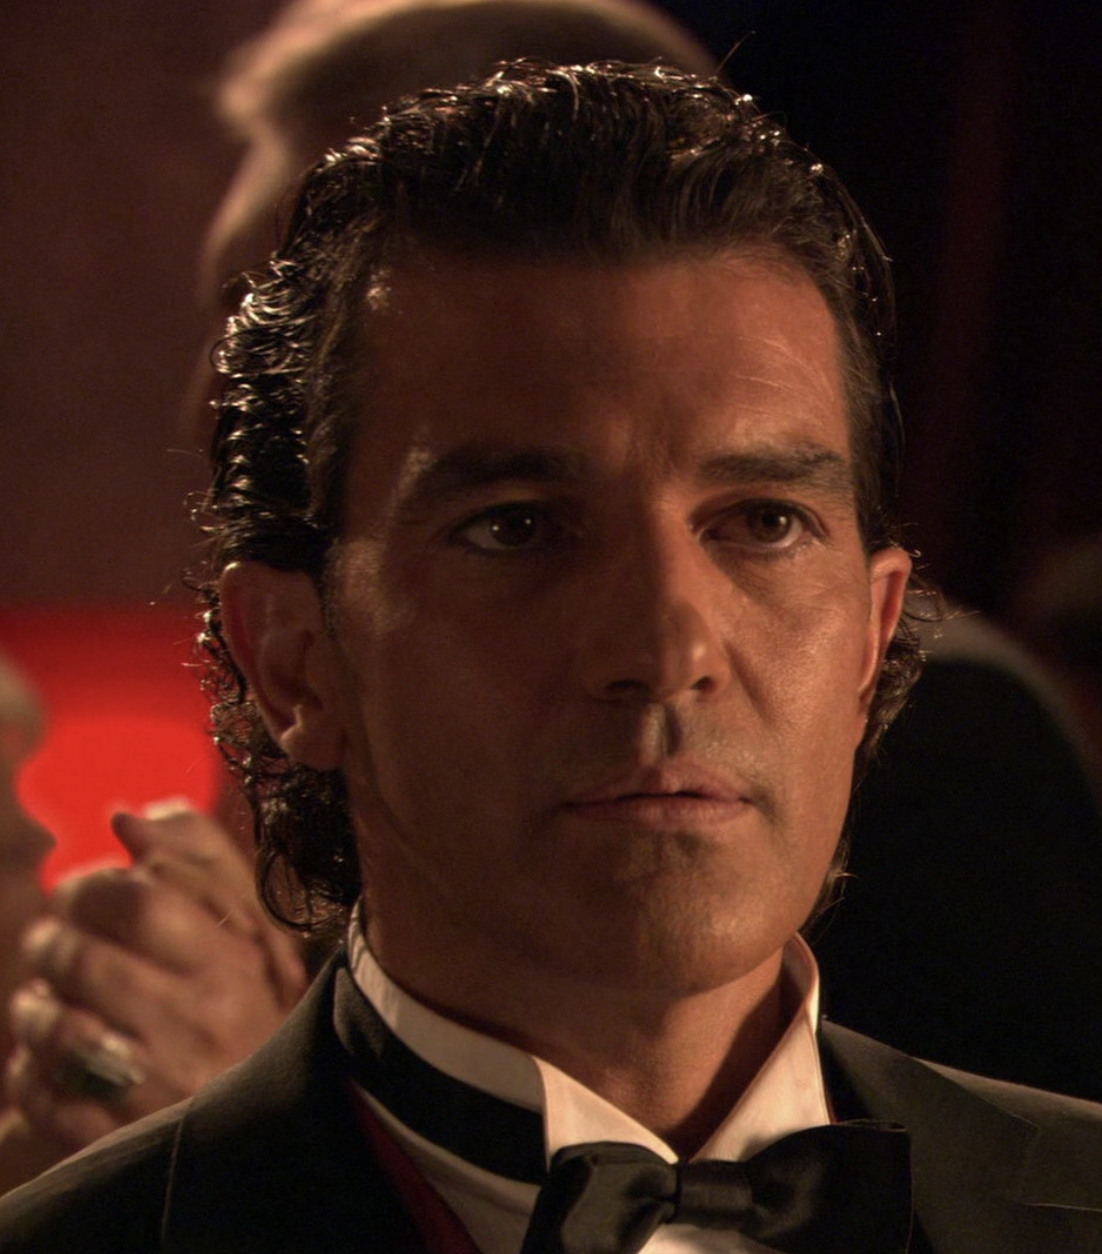 Gregorio from Spy Kids looking suave